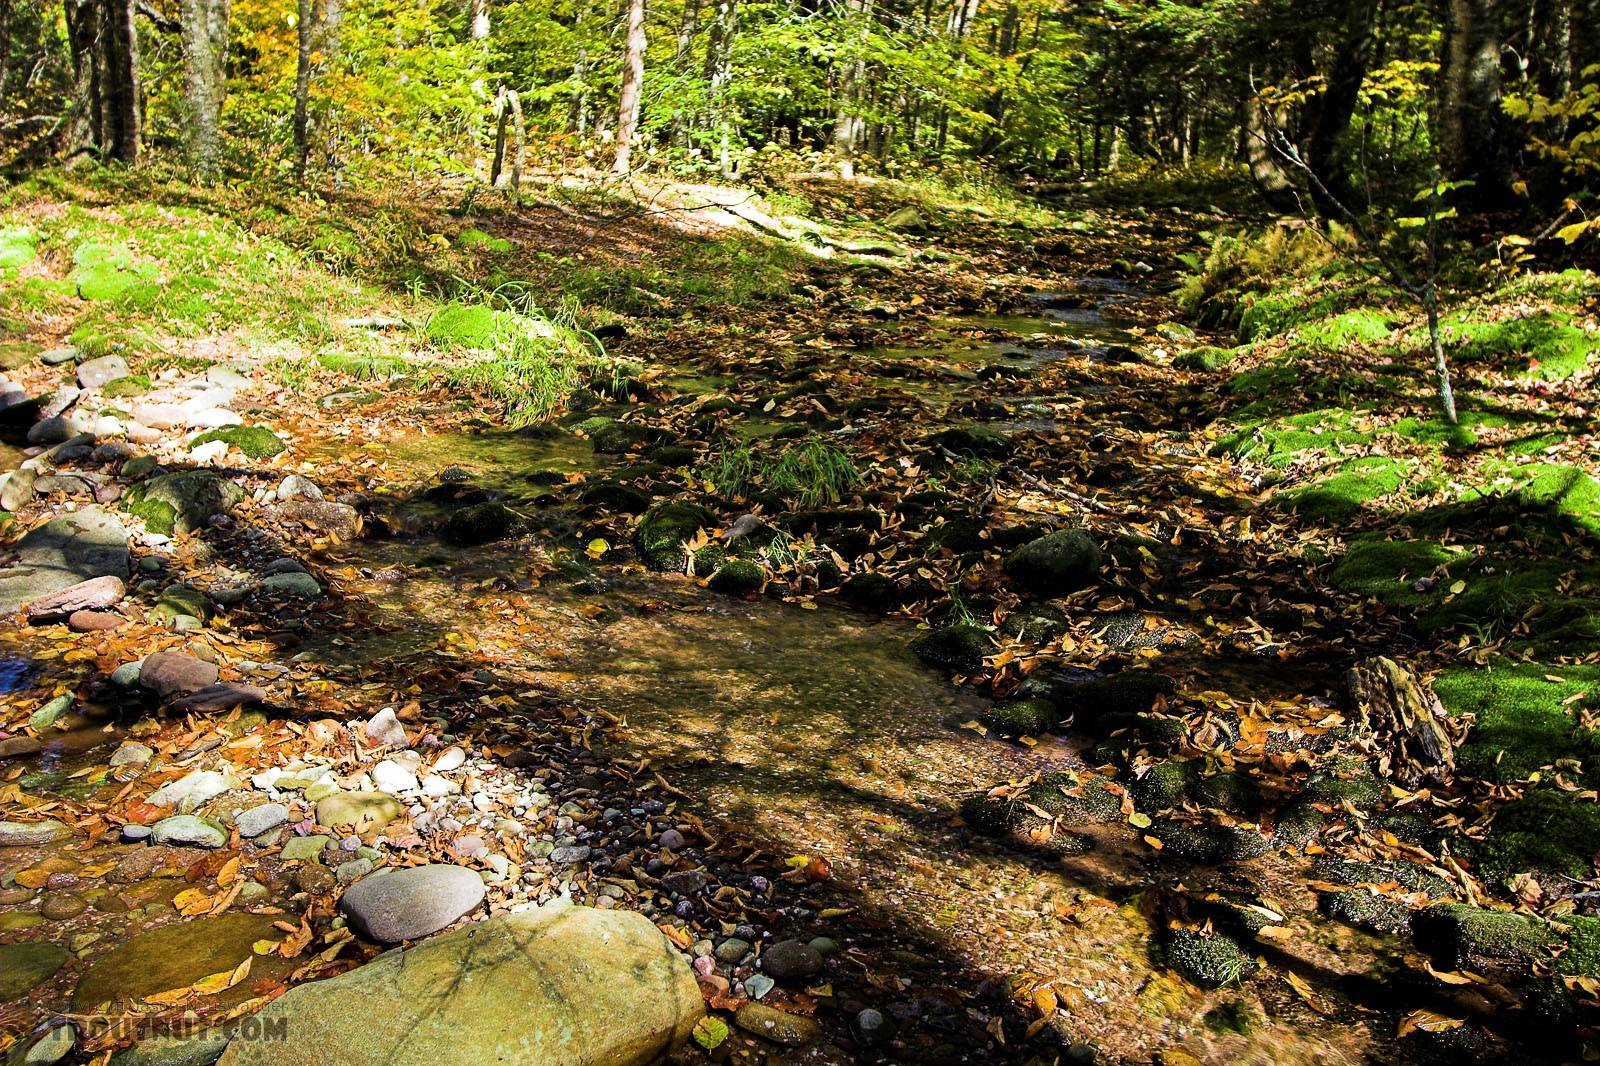 I like this little moss-bottomed trickle of a tributary. From the Mystery Creek # 23 in New York.